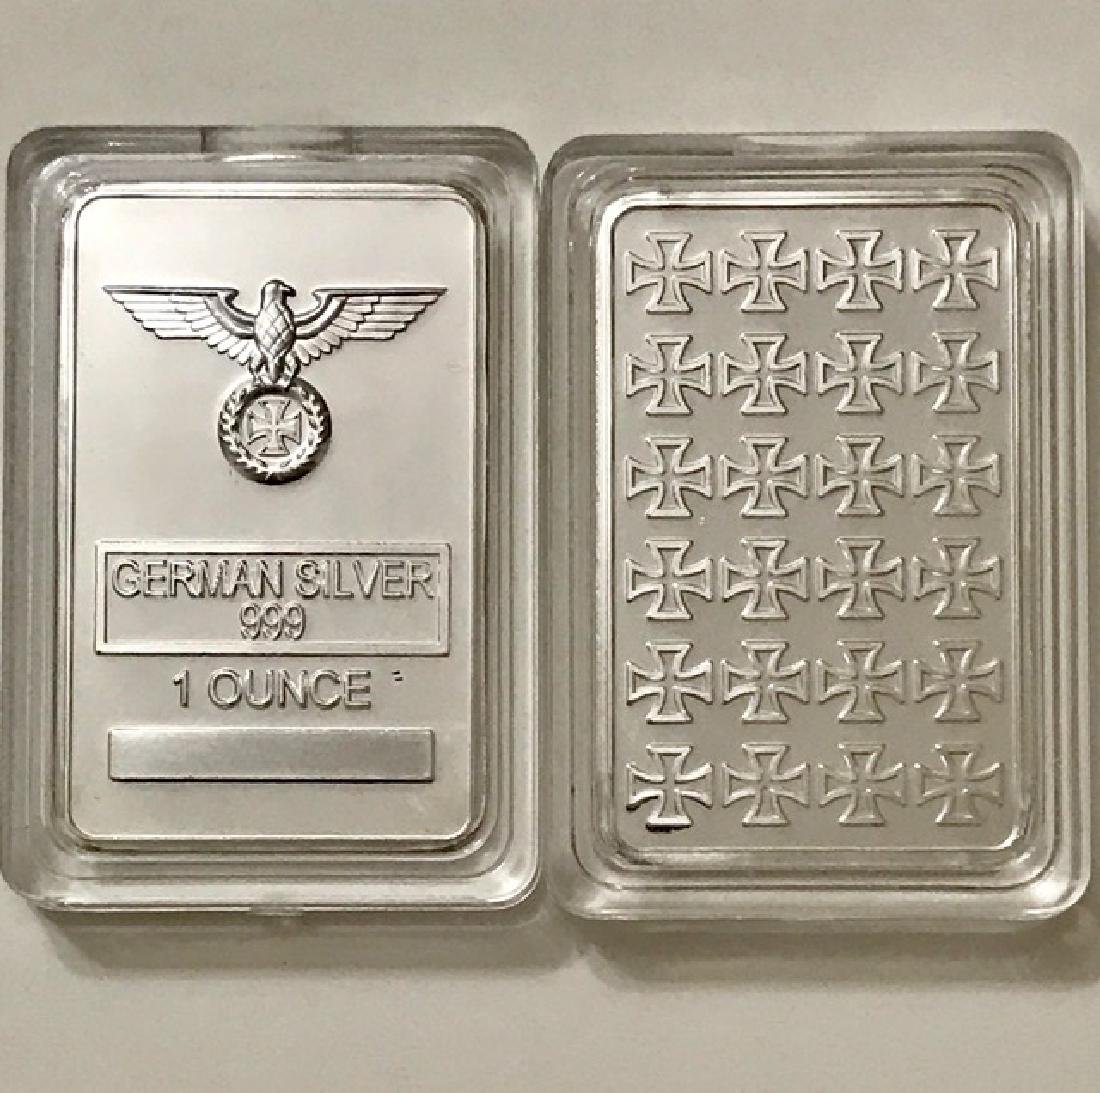 1 Oz .999 Iron Cross German Silver Bullion Bar